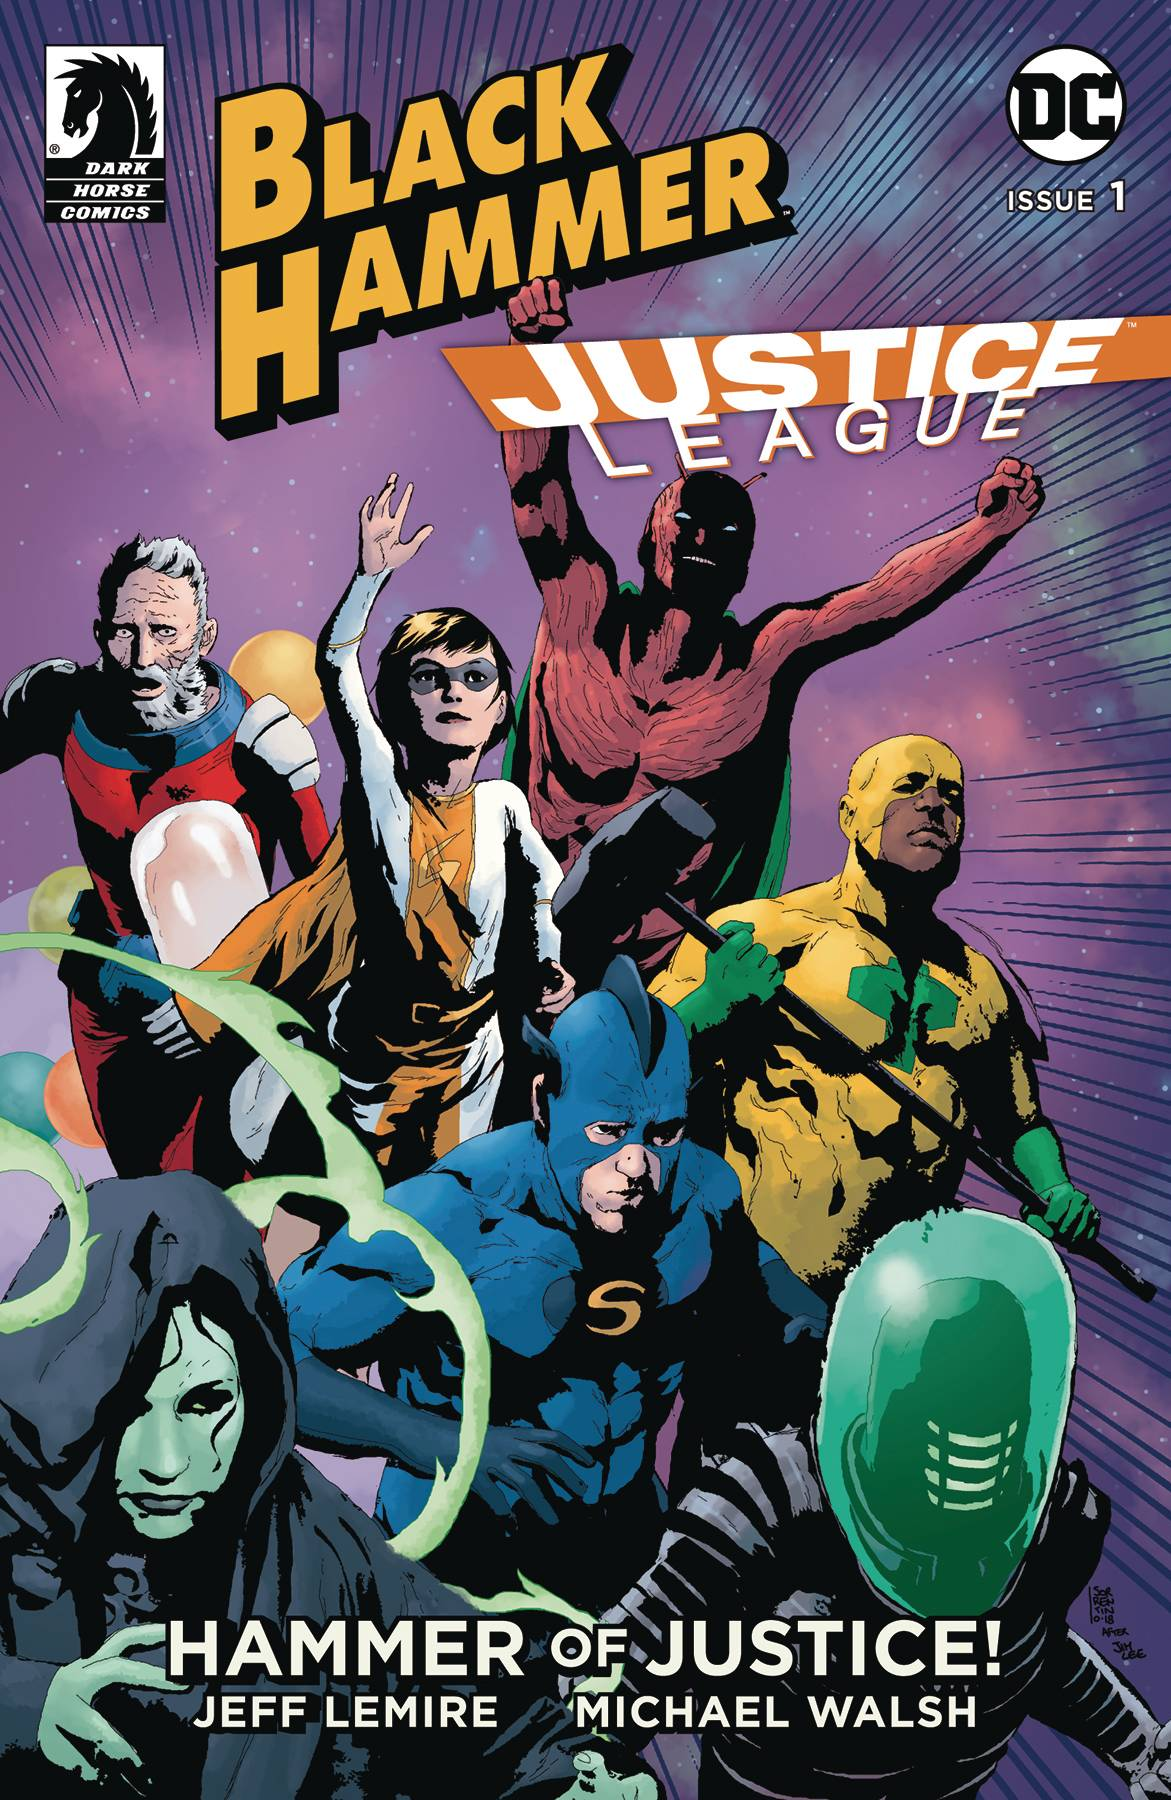 BLACK HAMMER JUSTICE LEAGUE 1 of 5 CVR B SORRENTINO.jpg